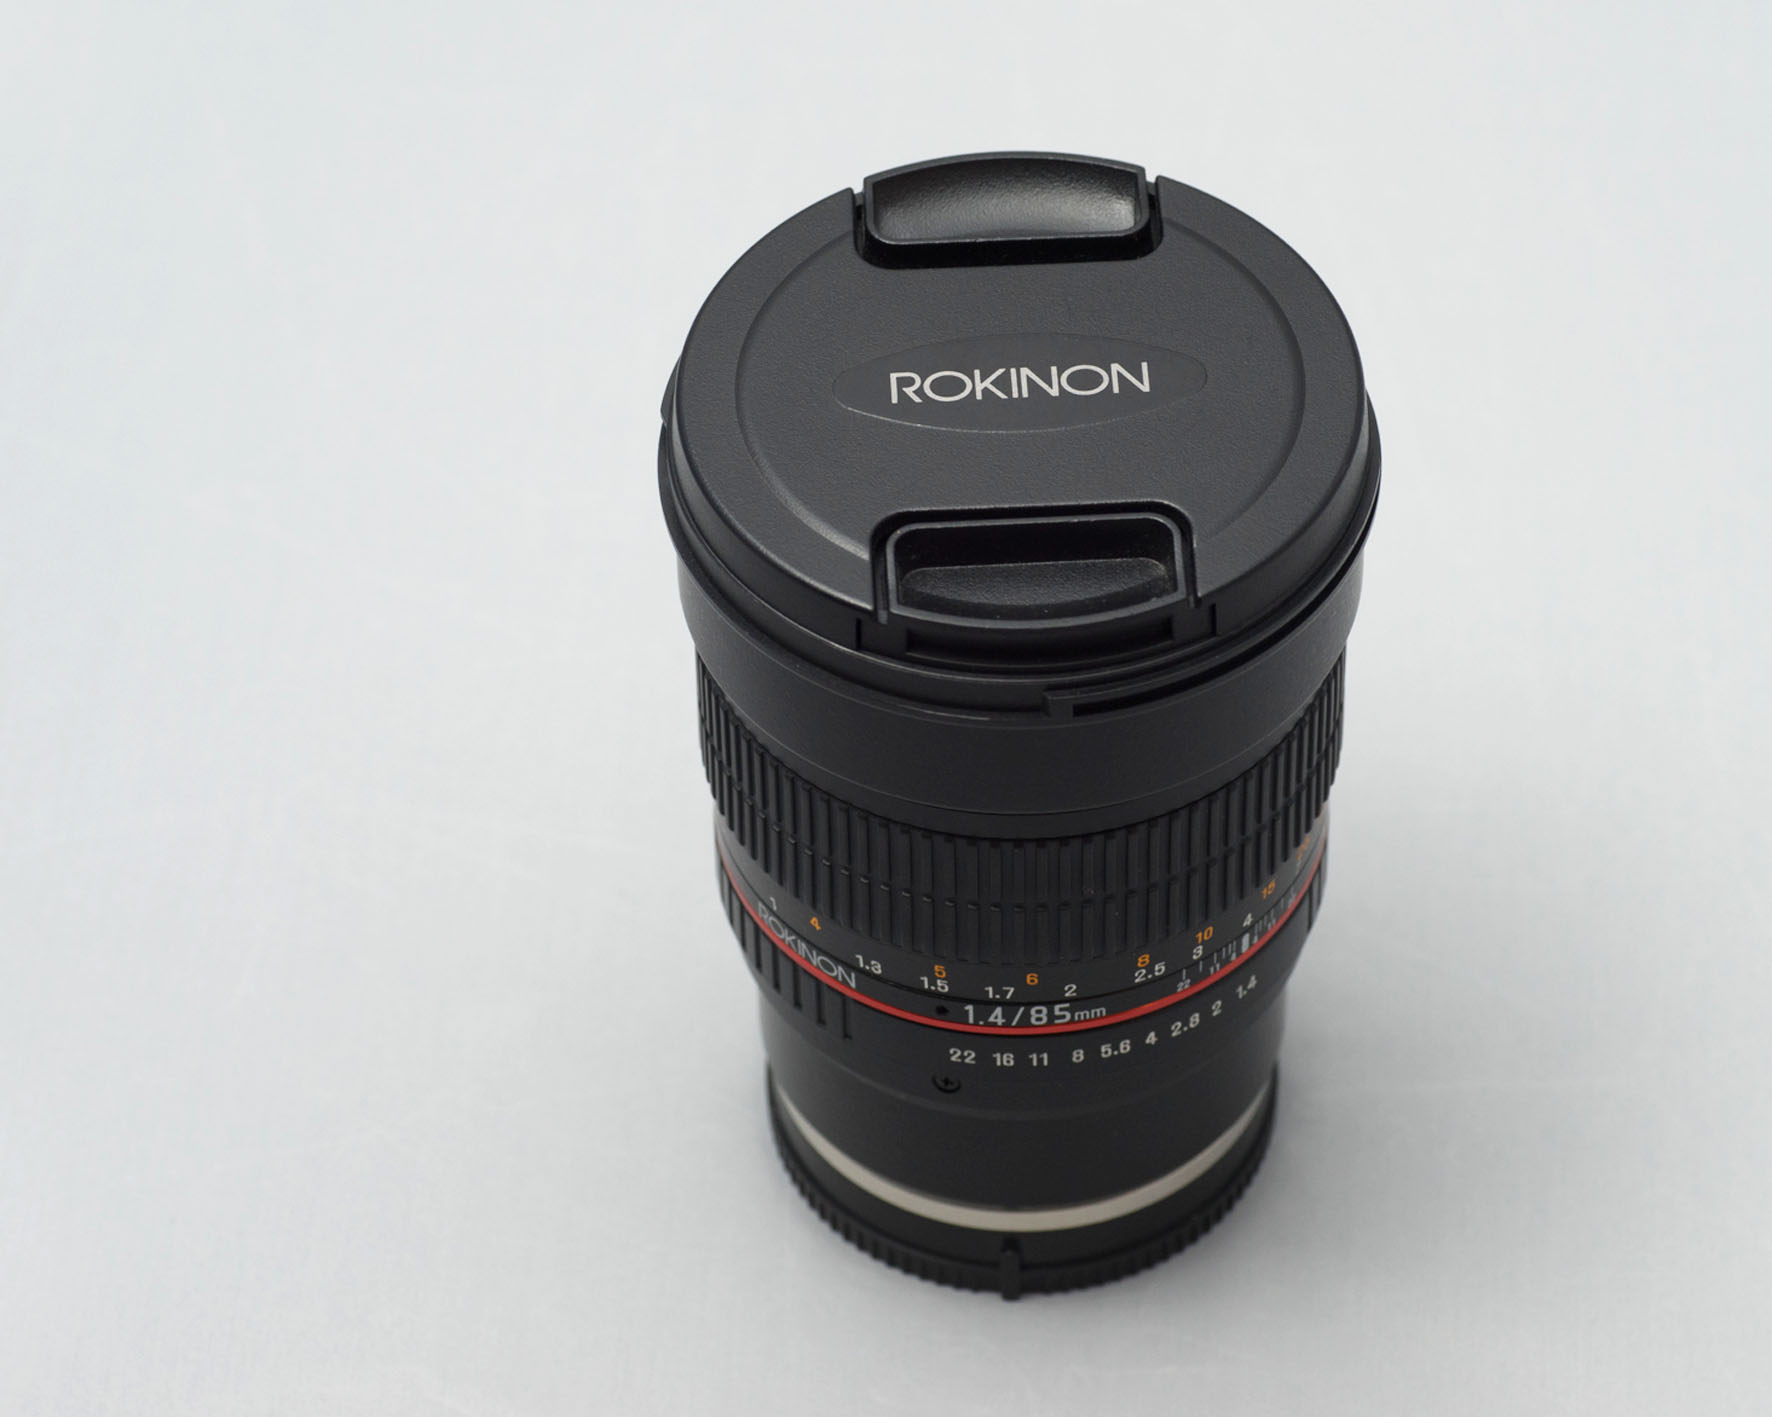 Samyang 85 mm f/1.4 IF MC Aspherical for Sony Alpha